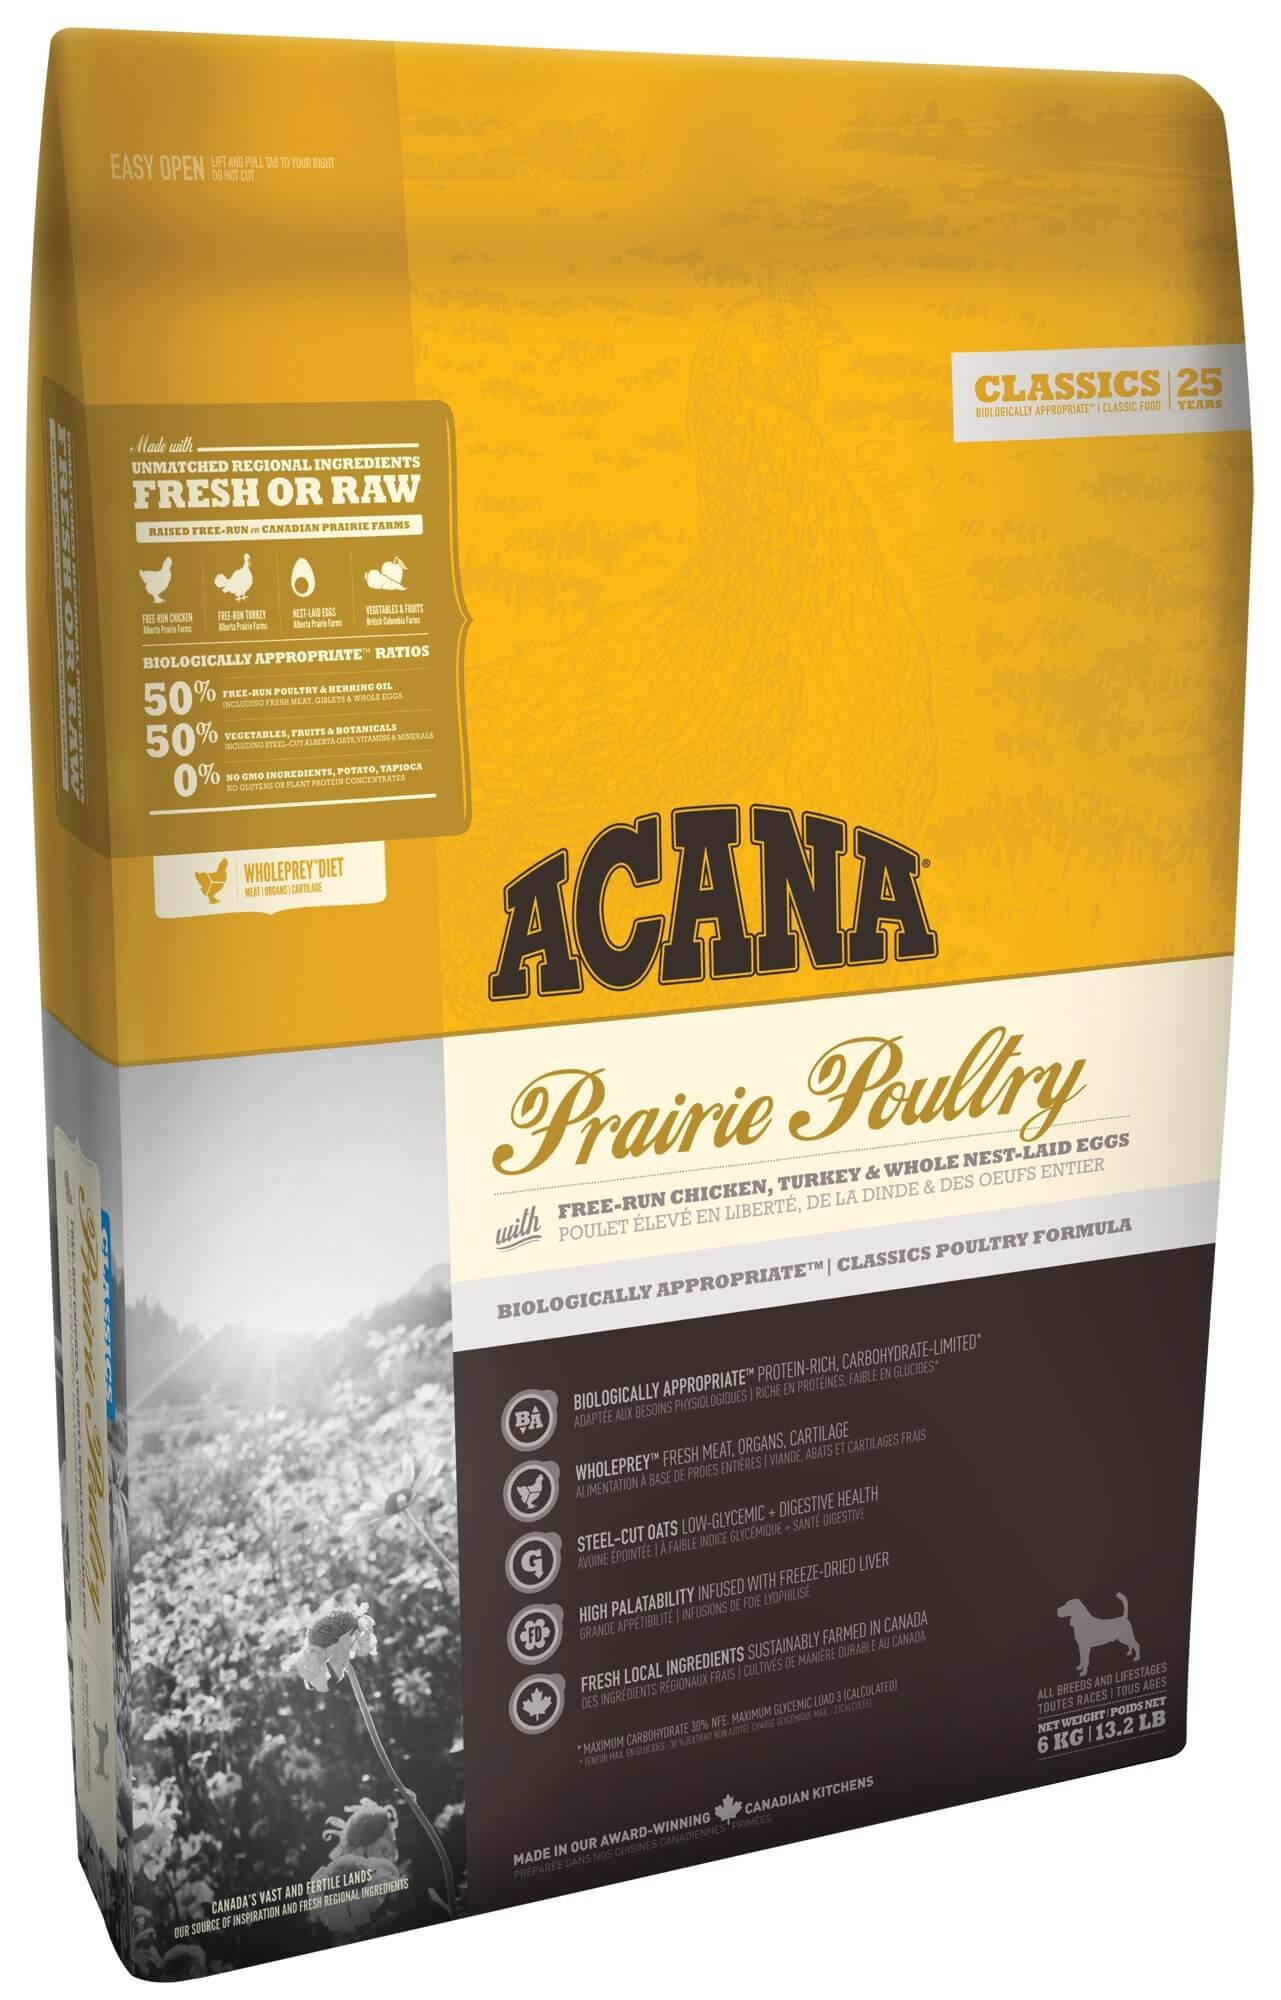 Acana Classics Prairie Poultry Hundefutter